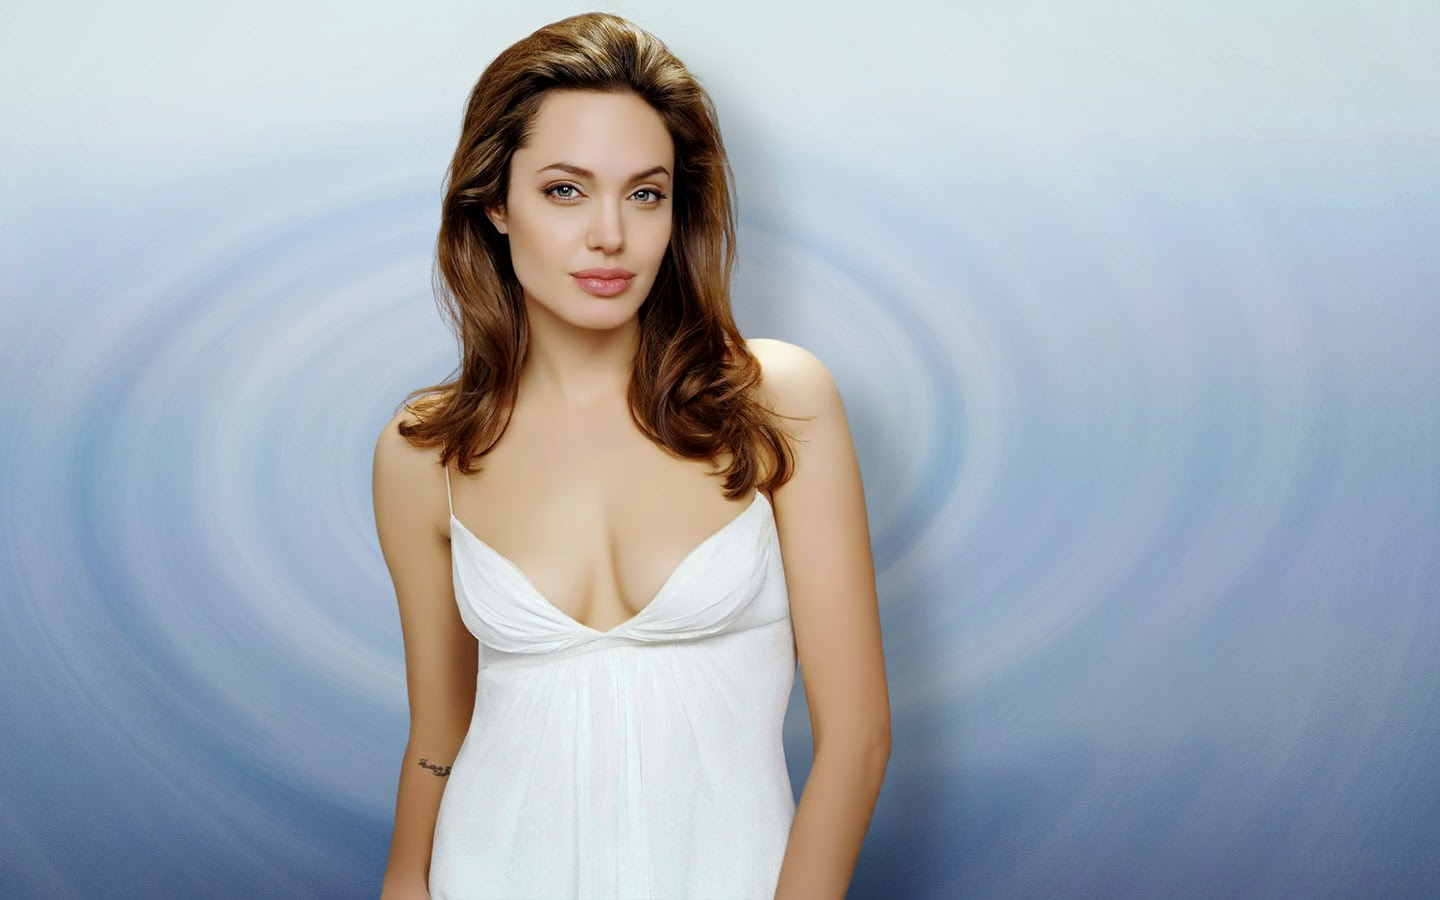 ANGELINA JOLIE_WALLSTOWN_IN_HOLLYWOOD ACTRESS_HOLLYWOOD CELEBRITIES